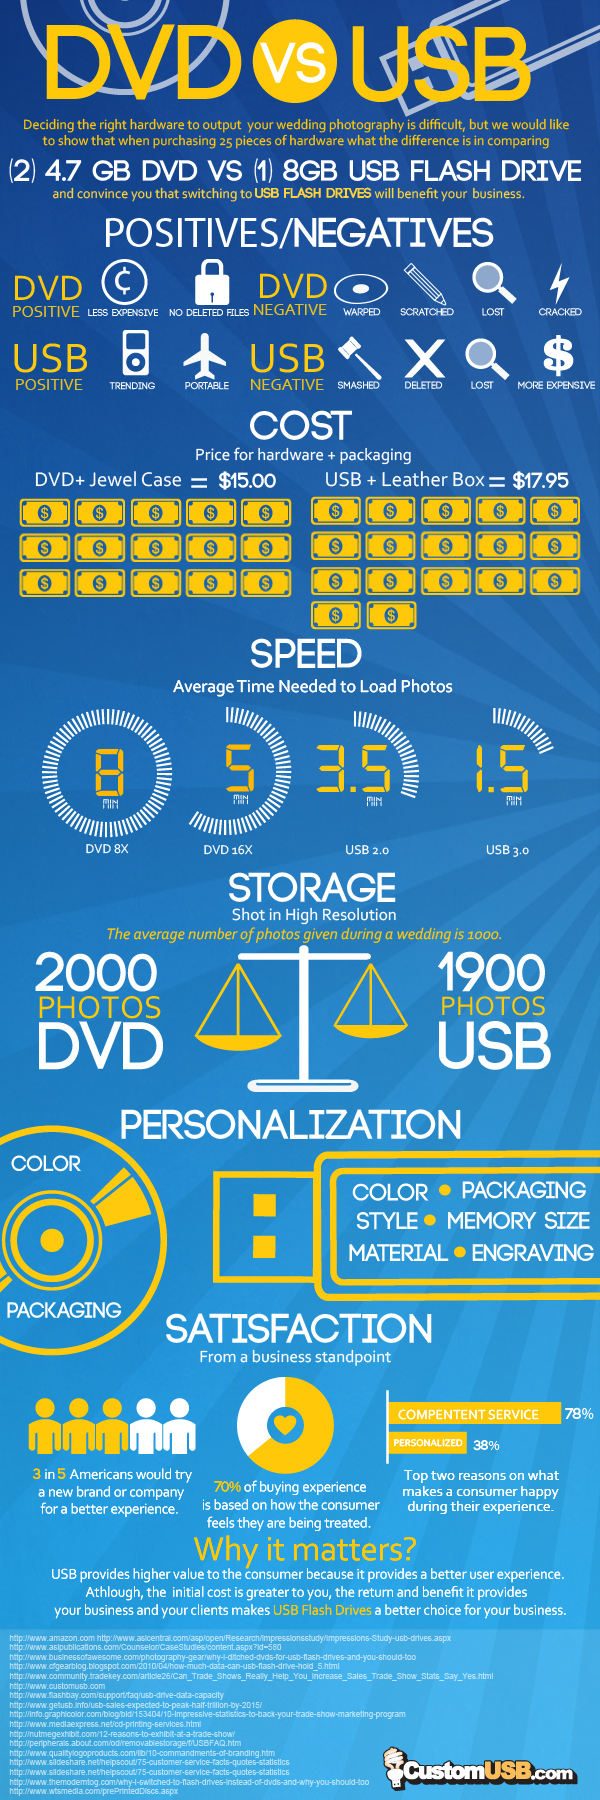 Custom_USB_DVD_vs_USB_Infographic